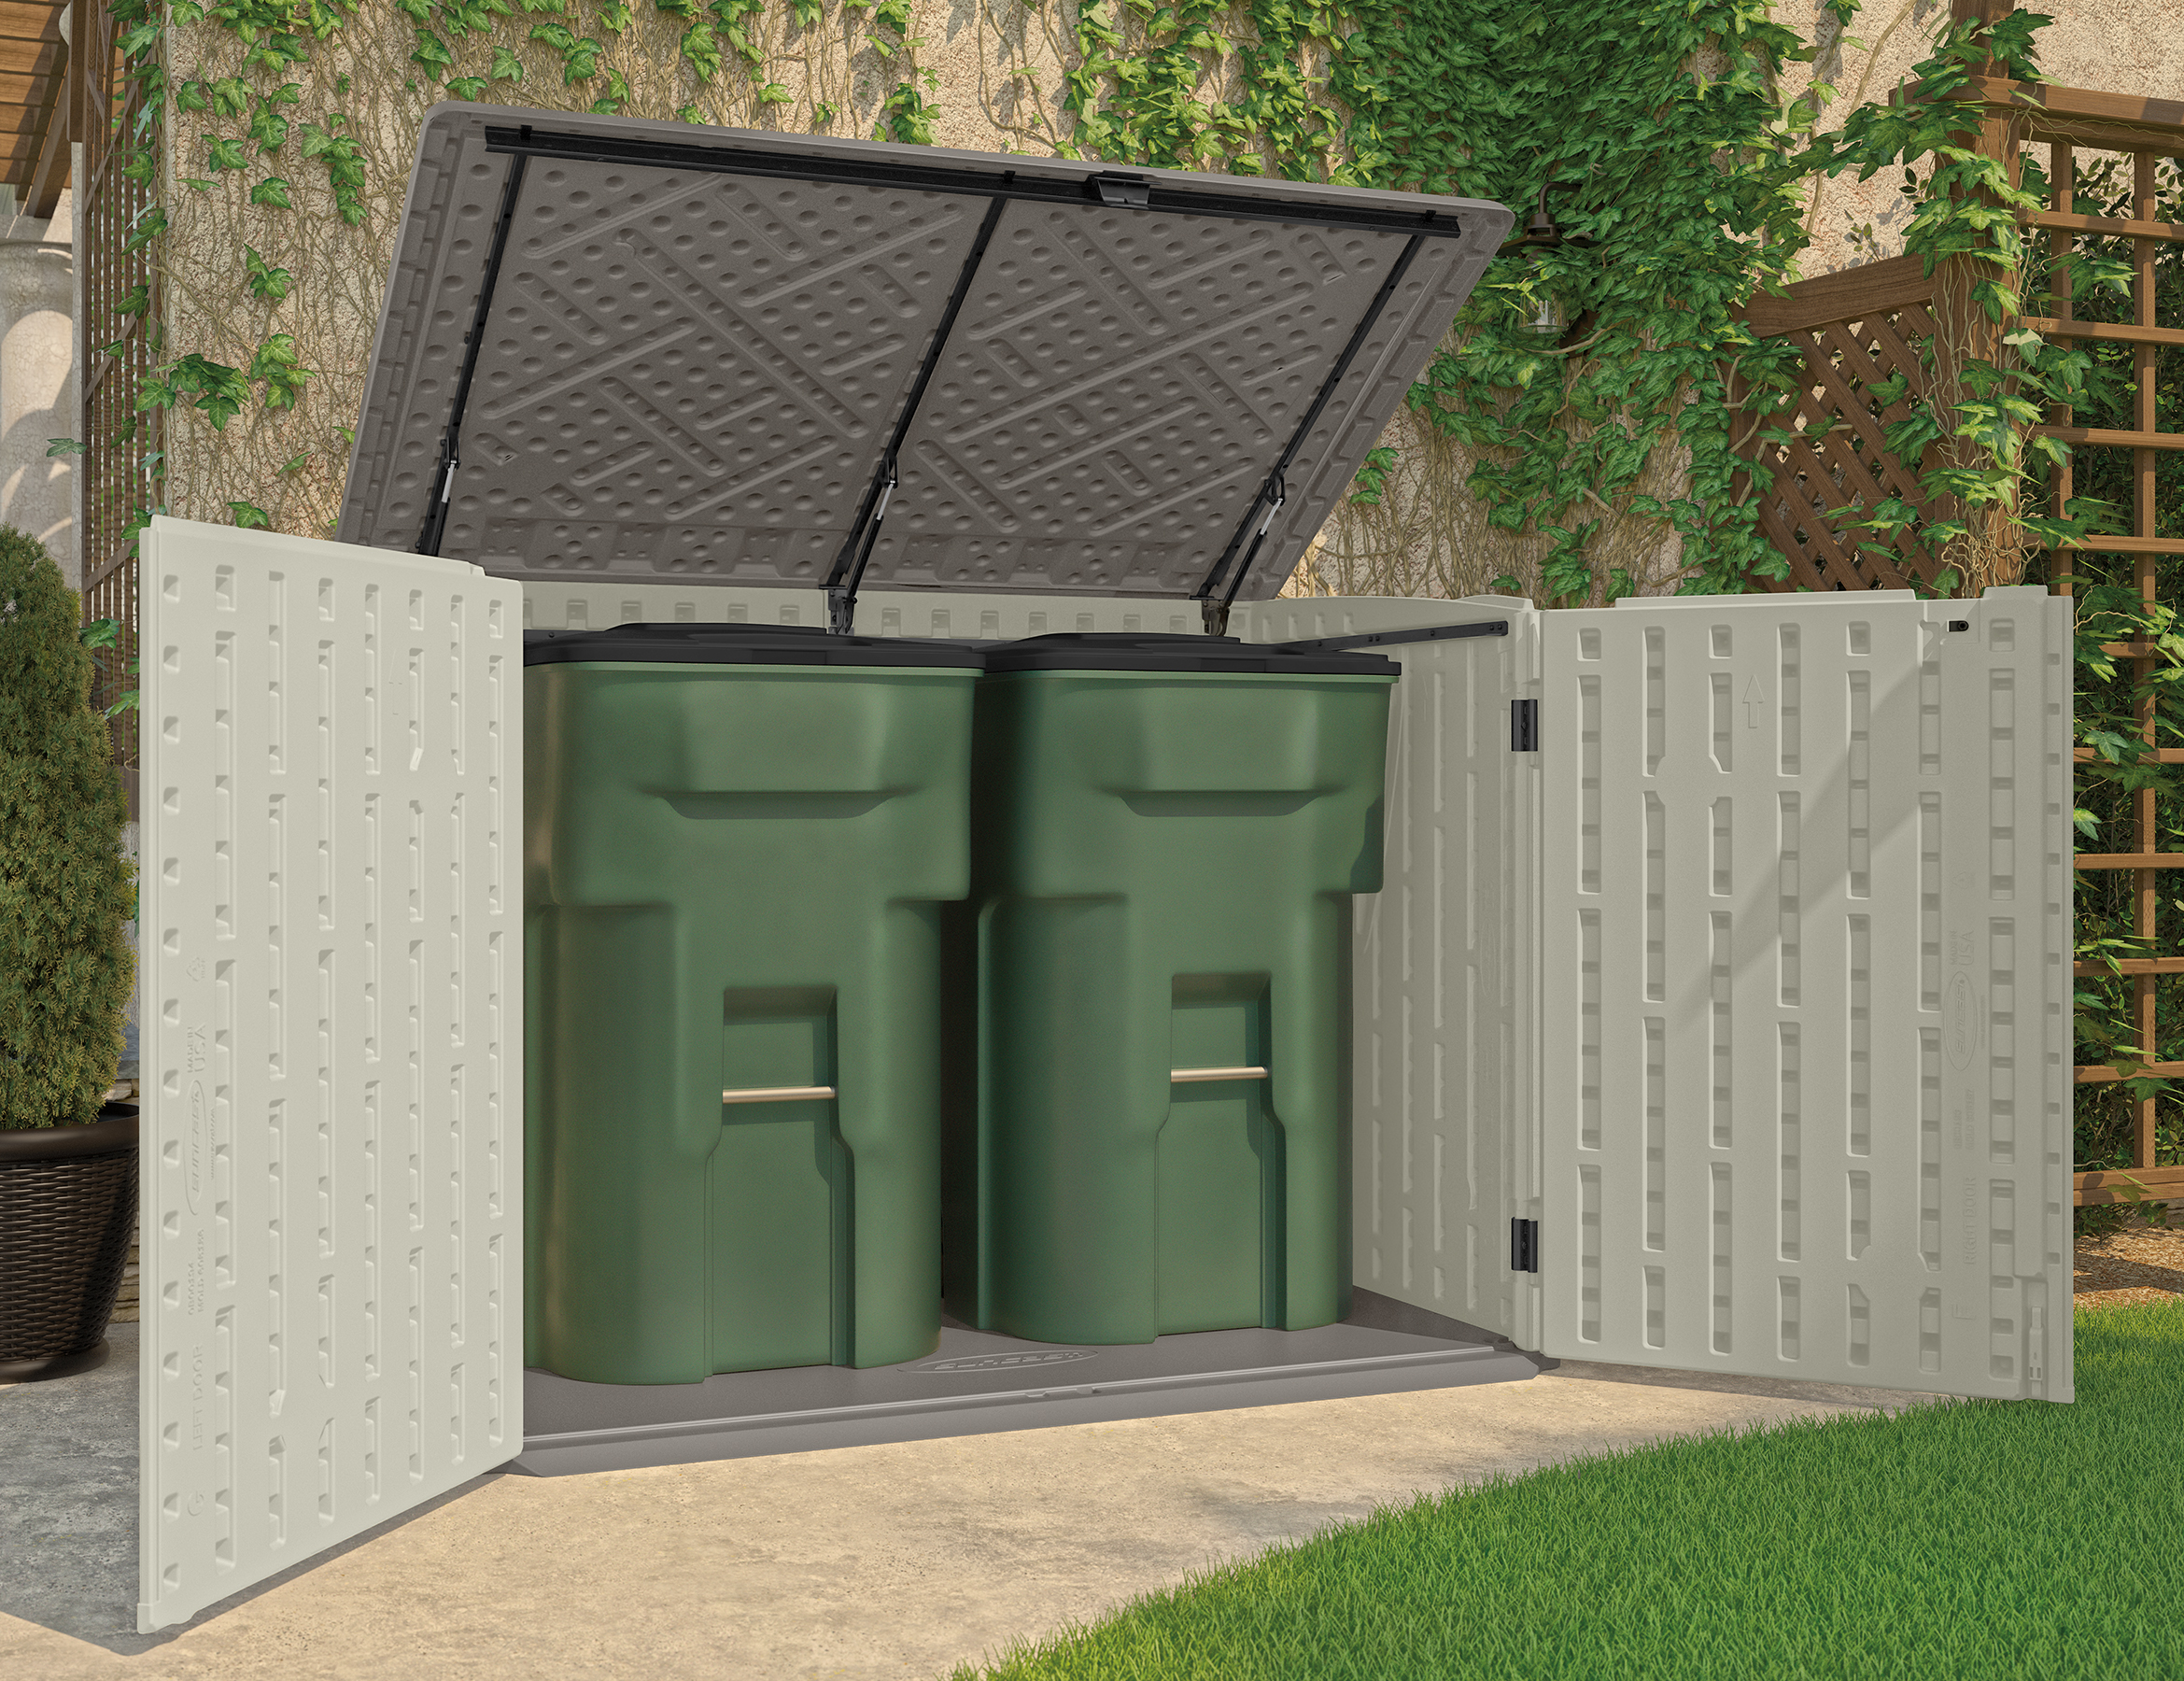 Outdoor Garbage Can Storage Shed